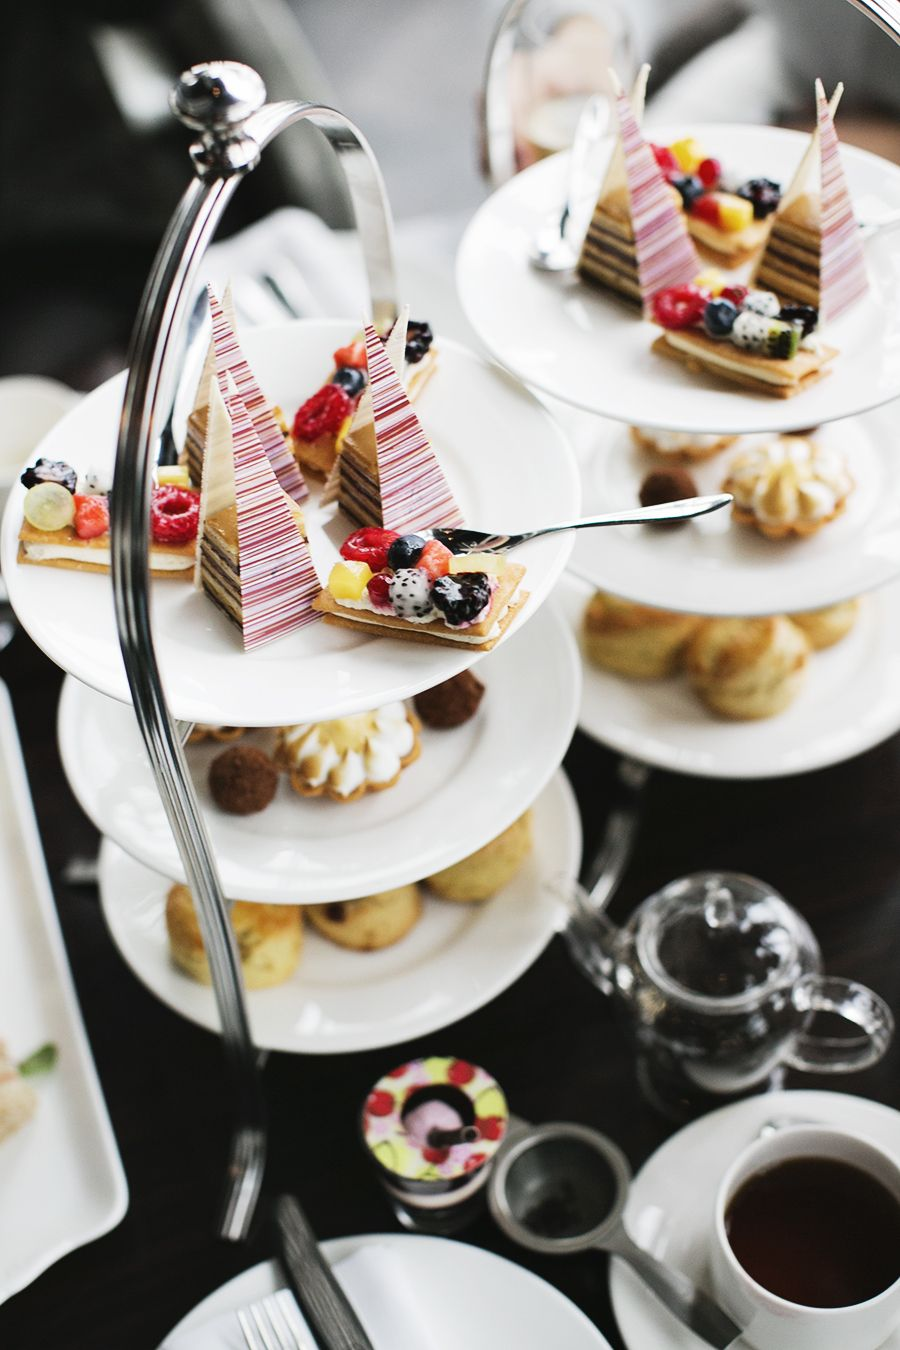 Aqua Shard - British cuisine overlooking the Thames from floor 31. For simple thrills, try the afternoon tea. £££-££££